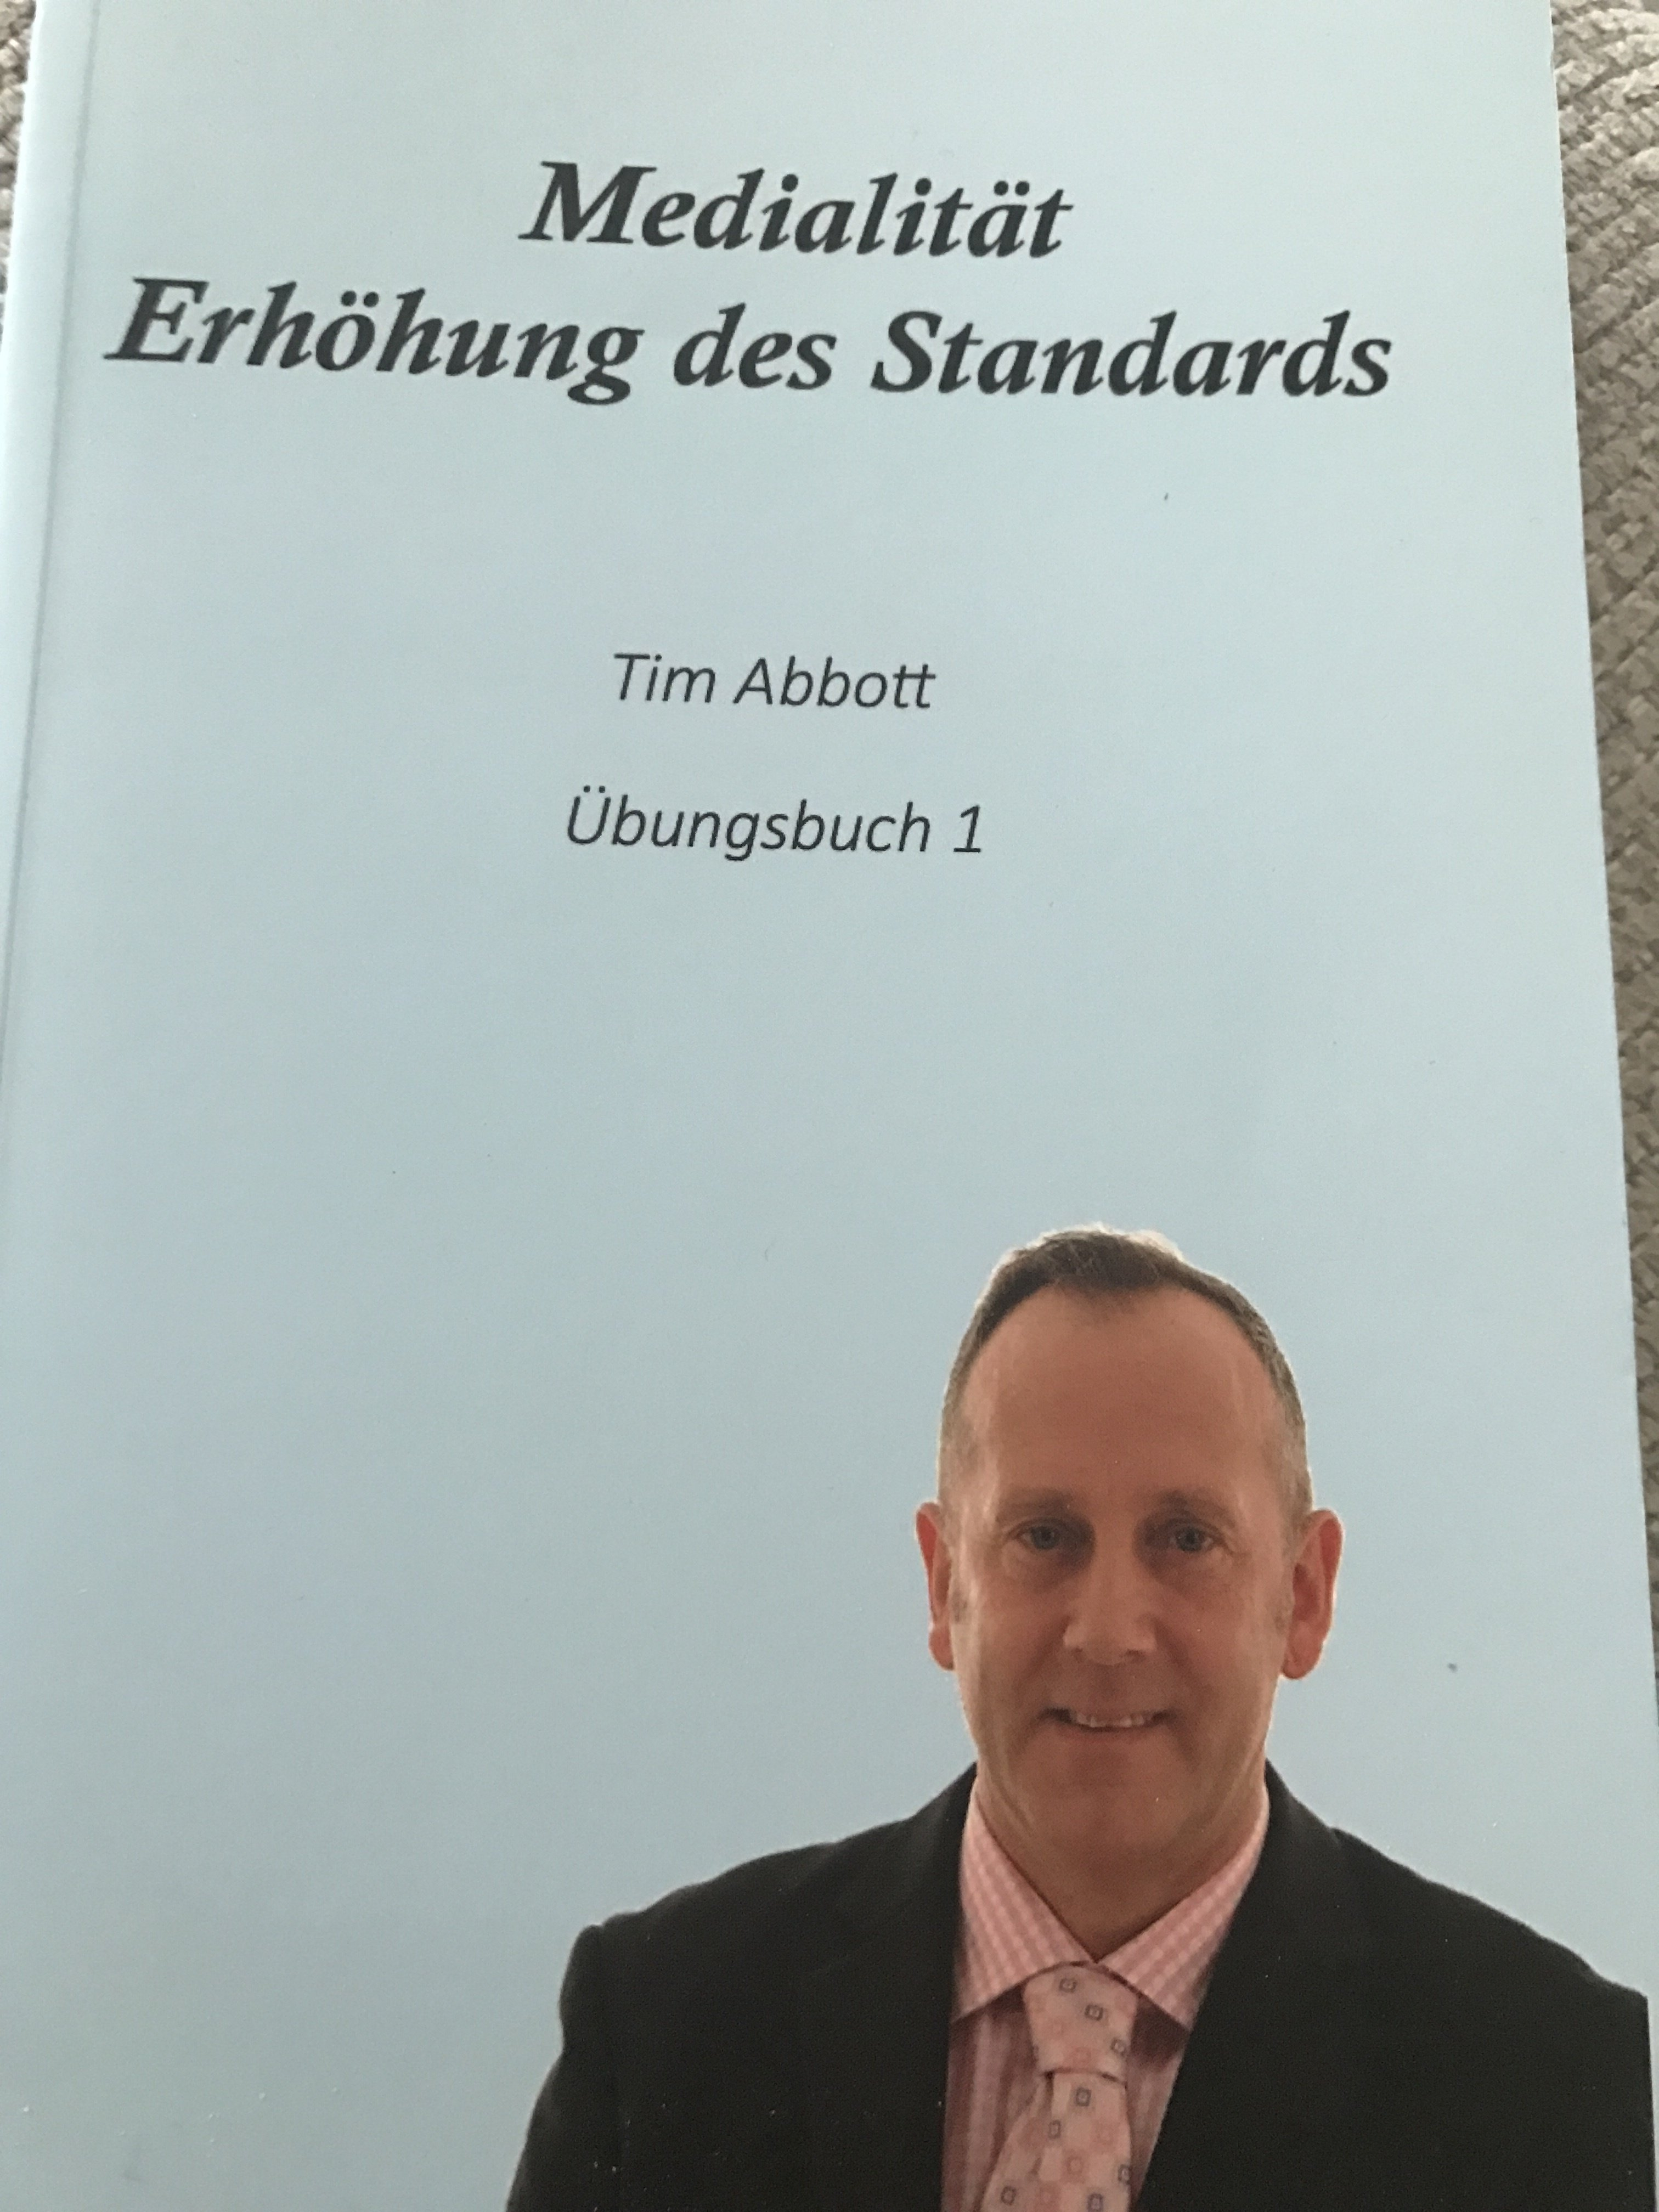 "GERMAN VERSION BOOK 1 - Medialitat ""Erhohung des standards"" Ubungsbuch 1 00001"